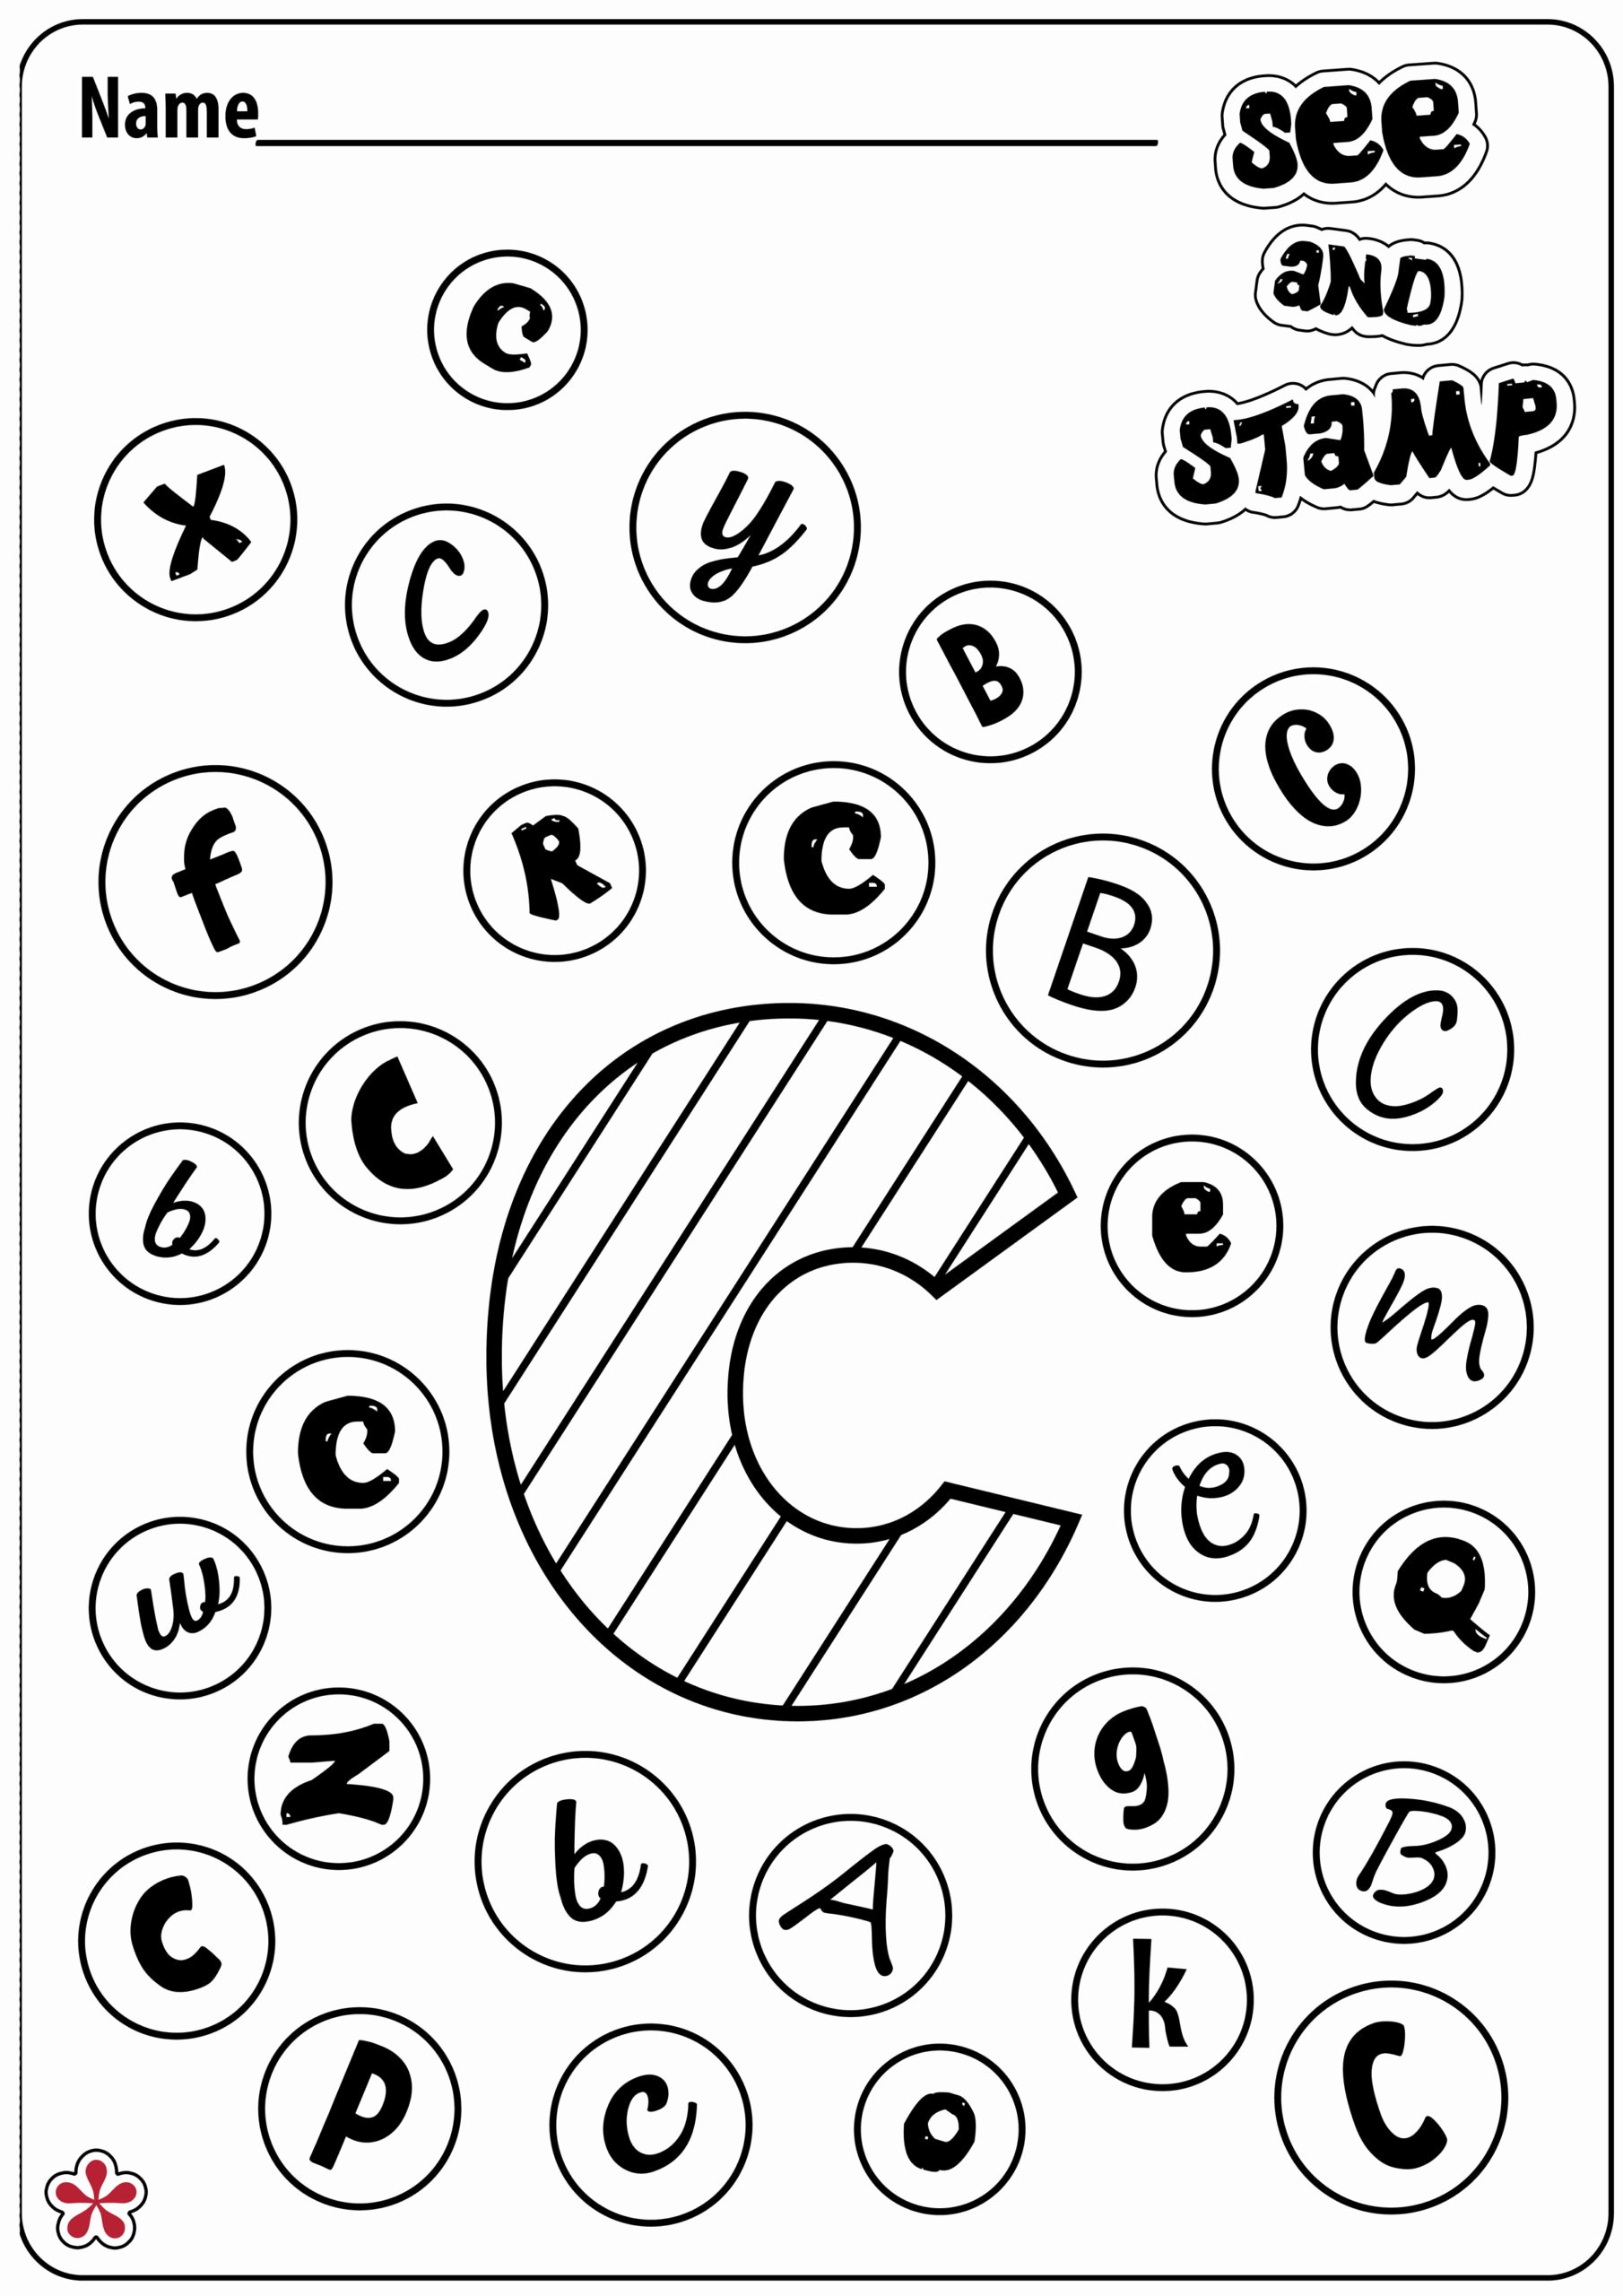 Christmas Alphabet Worksheets for Preschoolers Inspirational Worksheet at Worksheets for Kindergarten Spring Mathksheet